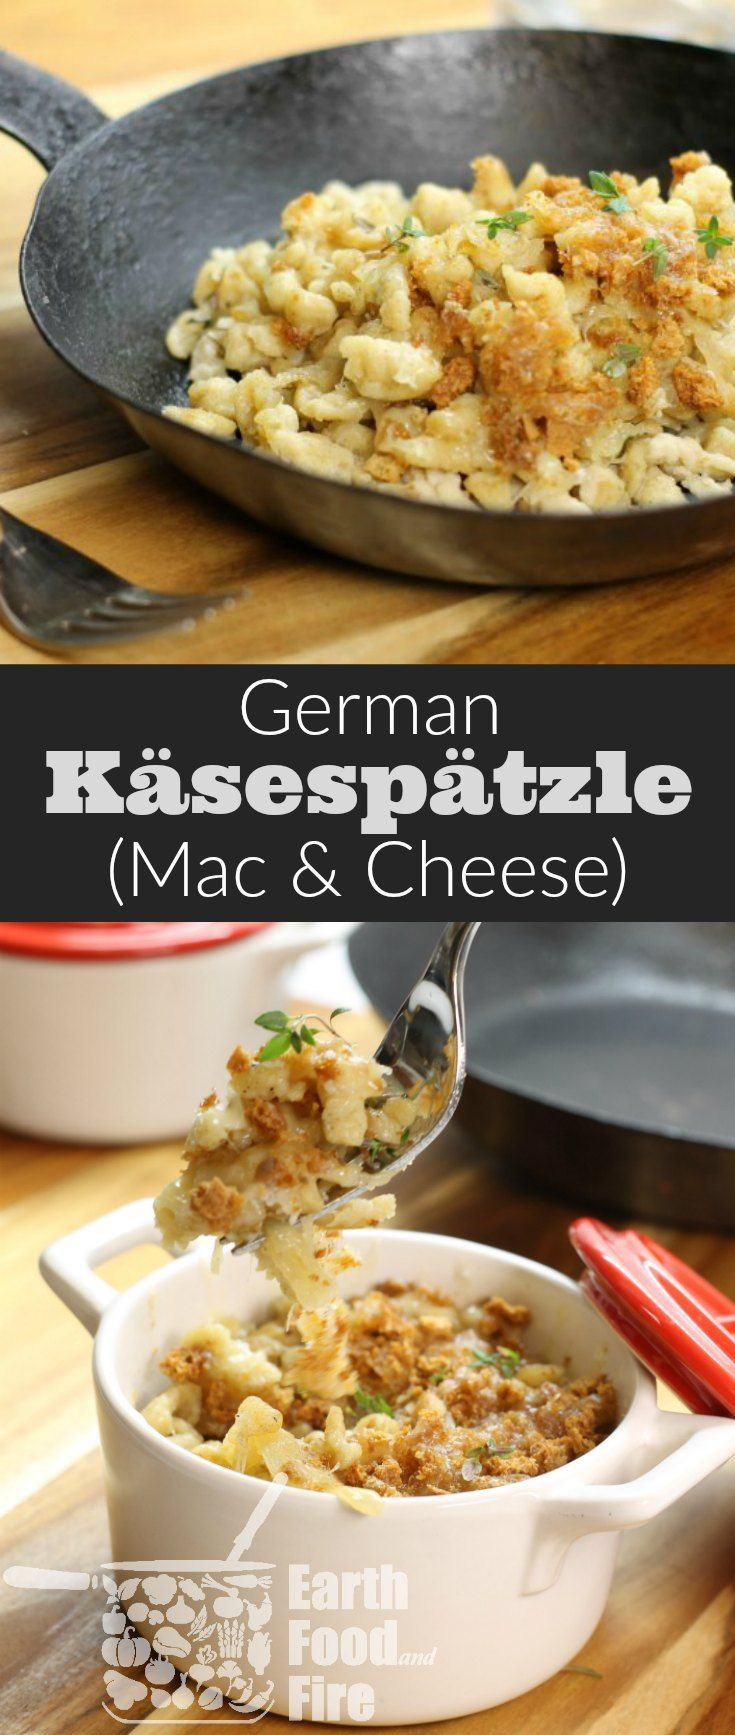 German käsespätzle also known as cheese spaetzle, is an easy to make noodle dish loaded with Emmental Cheese. Basically a fancy Mac & Cheese this traditional German dish is ideal for lunch or a quick supper! #spaetzle #cheese #macandcheese via @earthfoodandfire